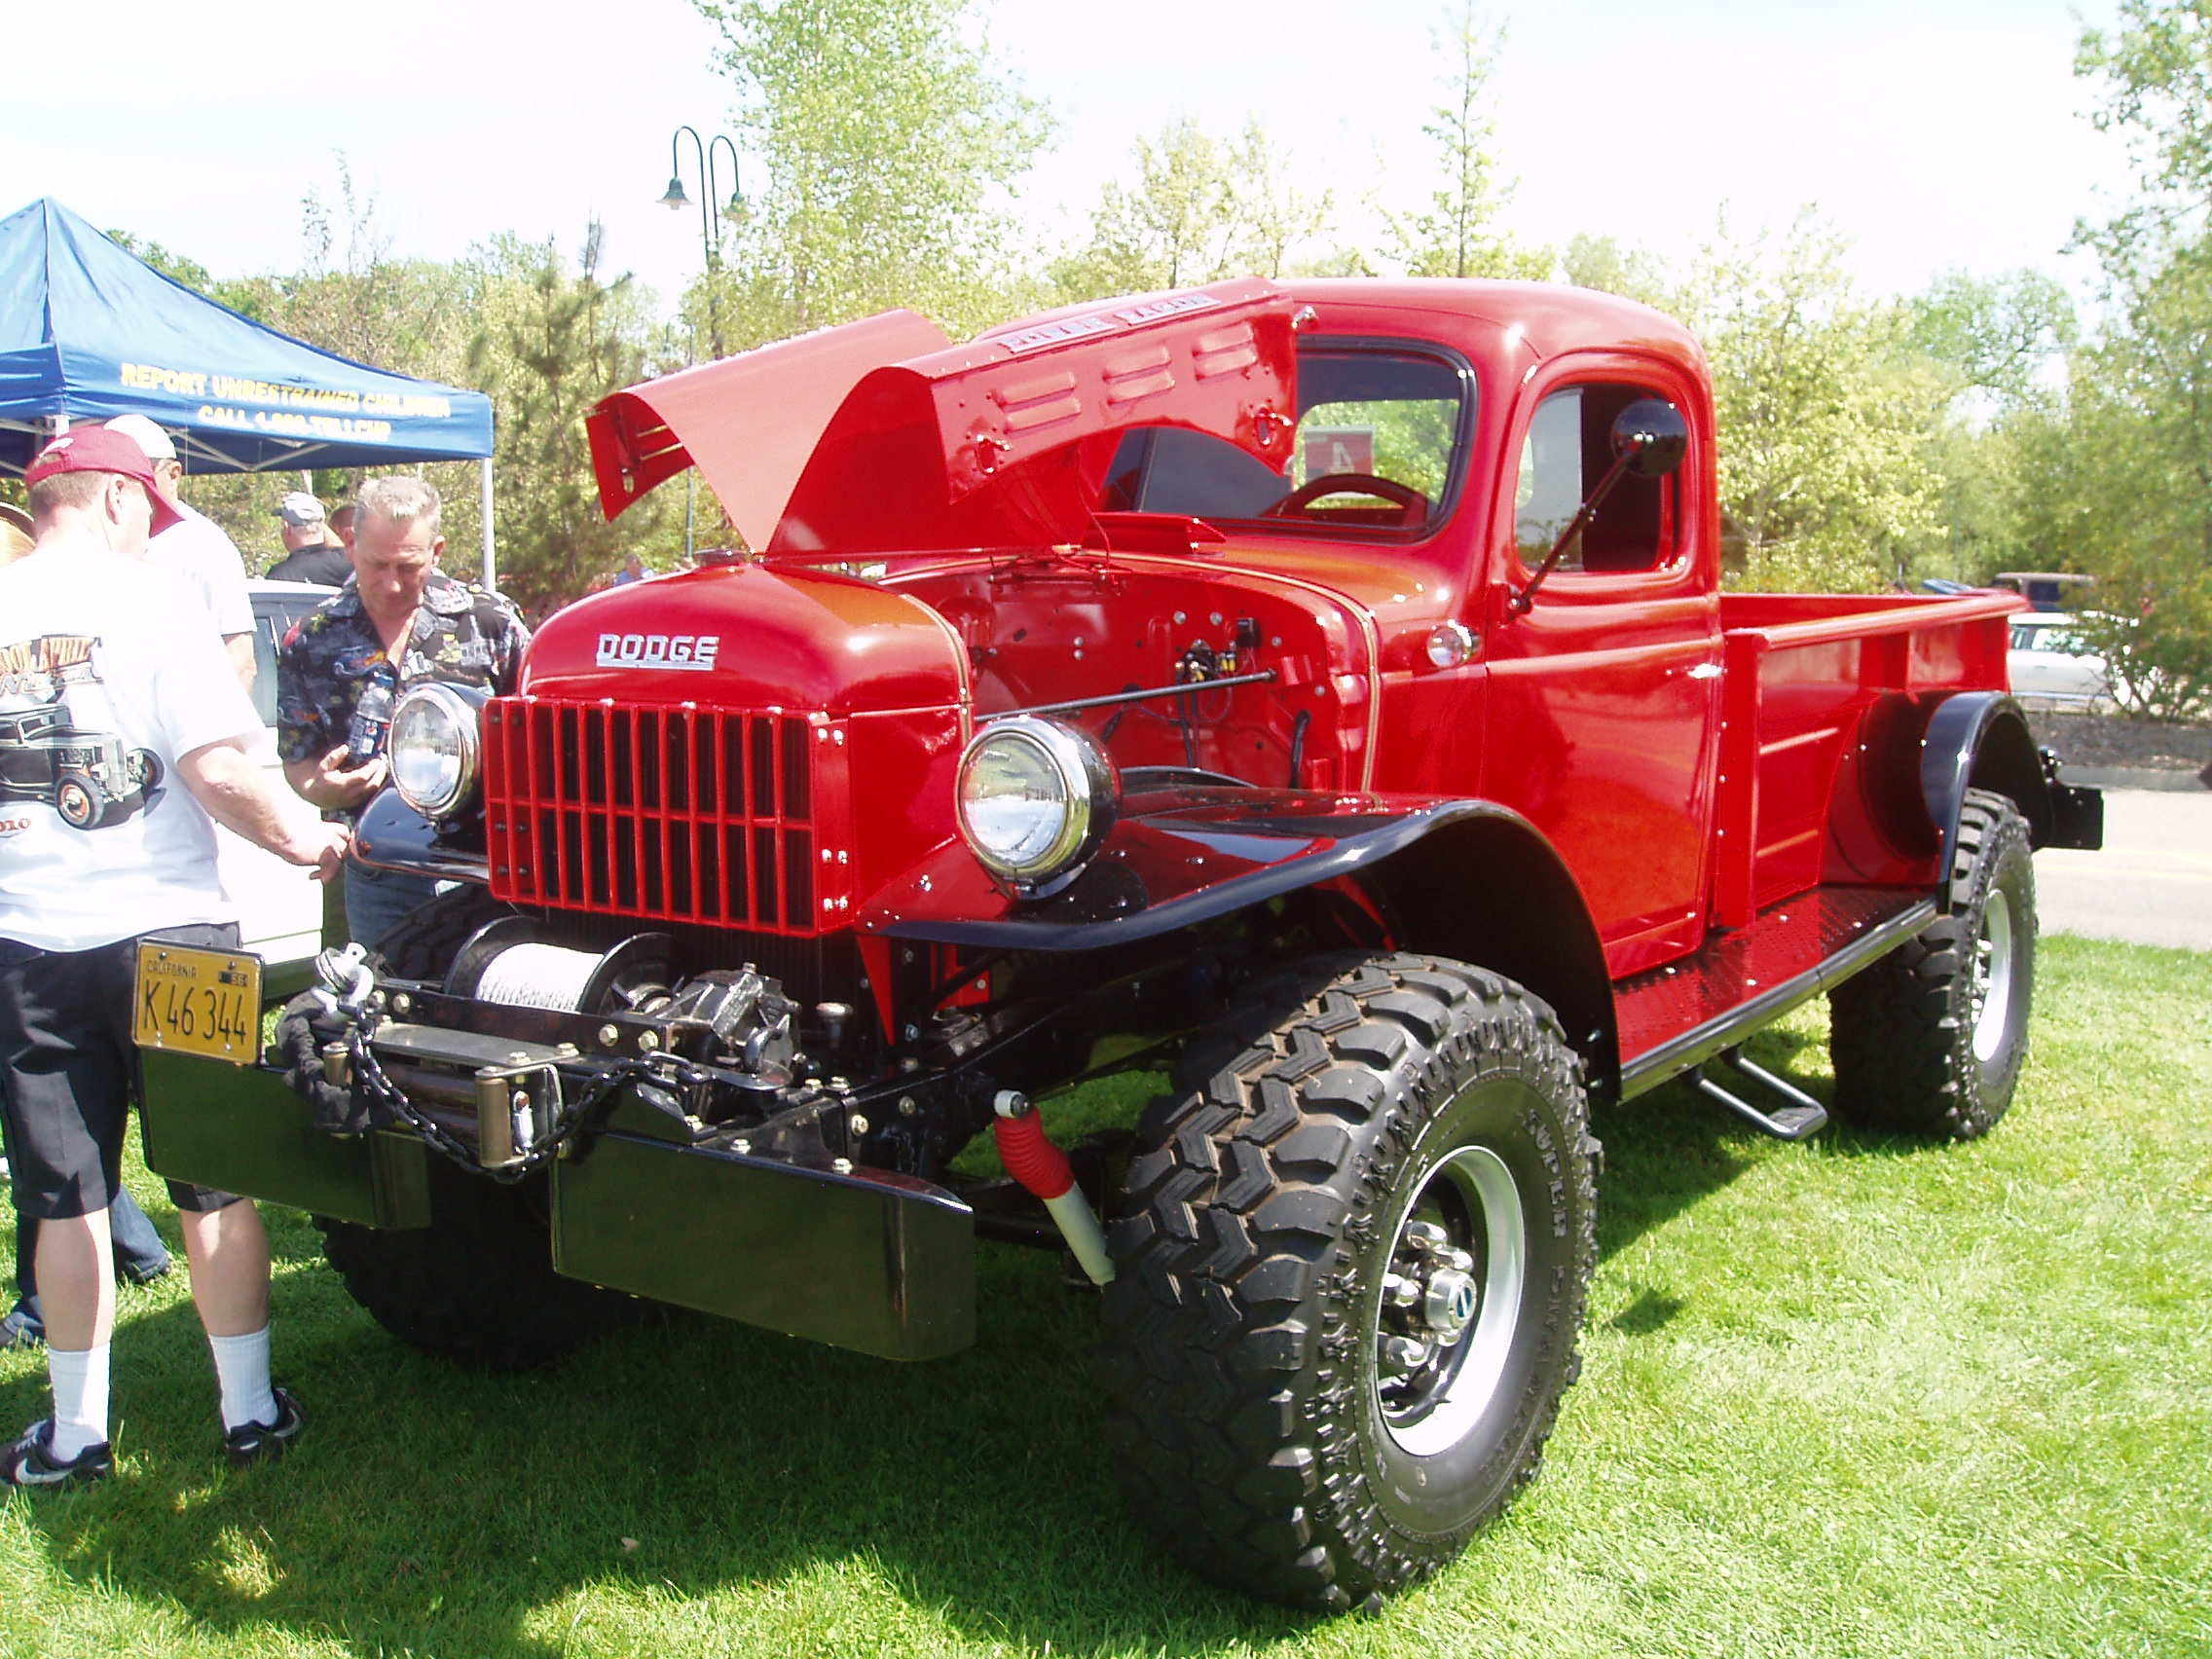 Dodge Power Wagon Wallpapers Vehicles Hq 1954 Crew Cab Hd Quality Wallpaper Collection 2272x1704